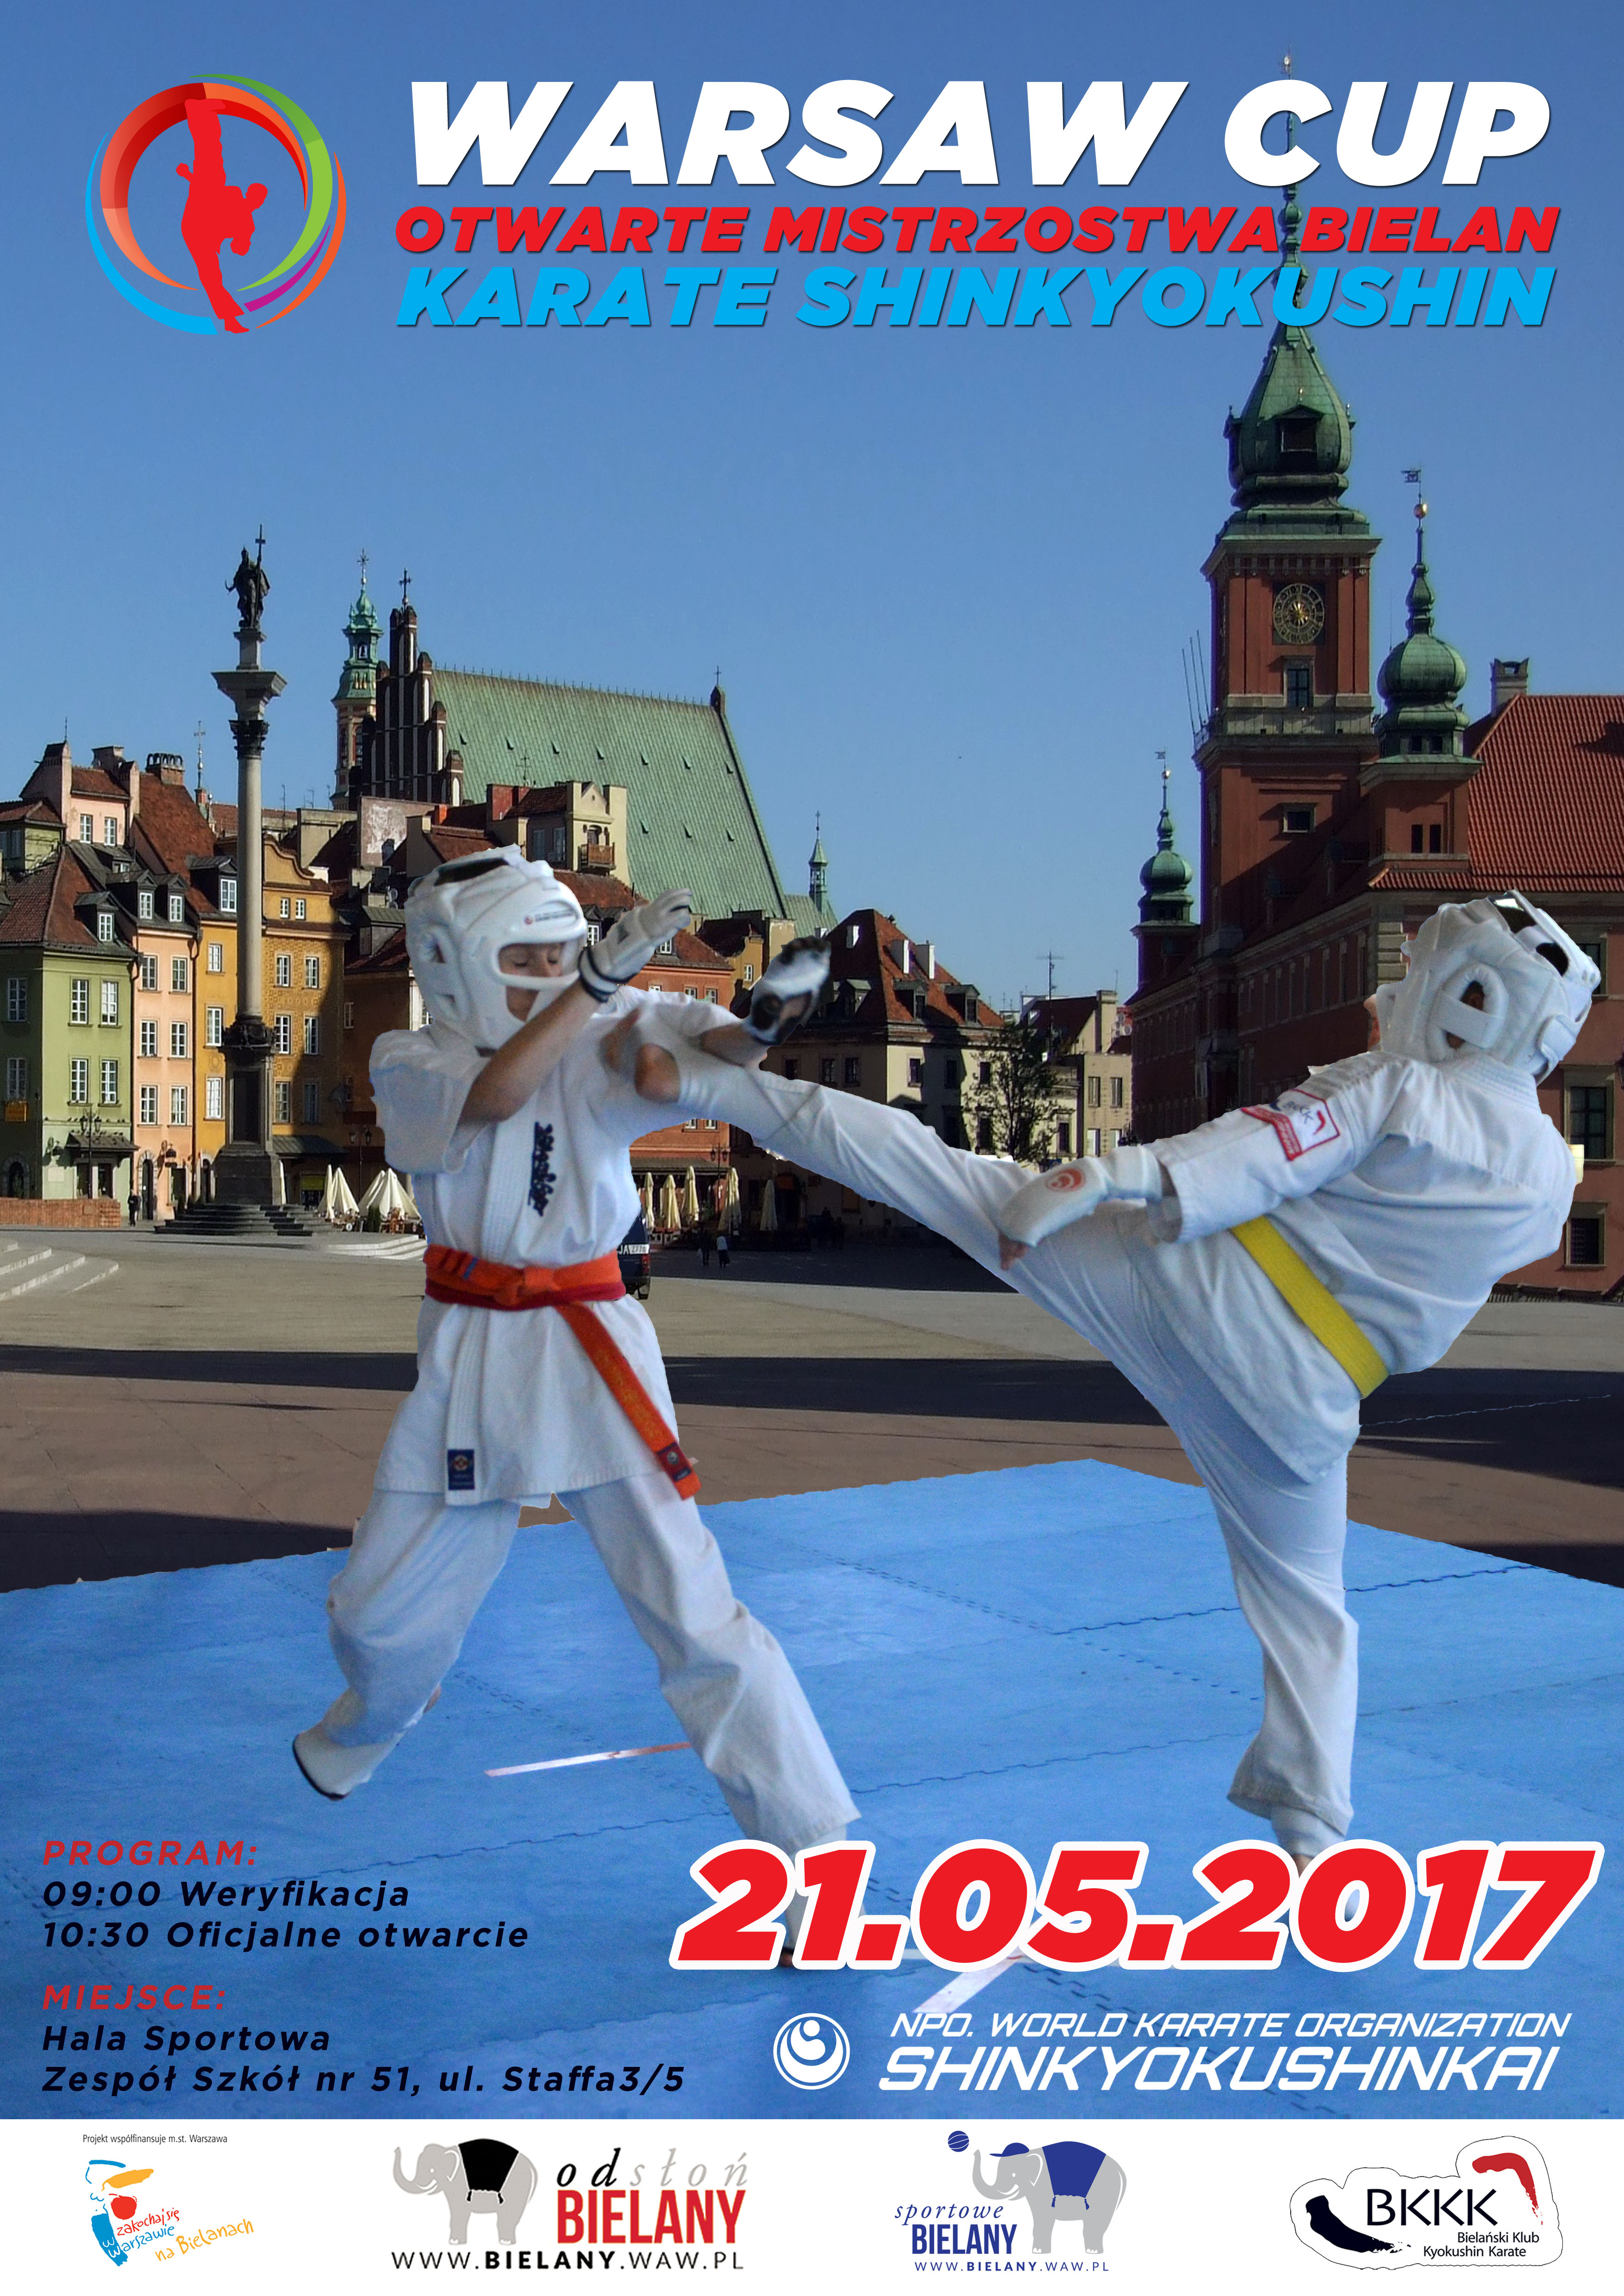 Warsaw Cup 2017